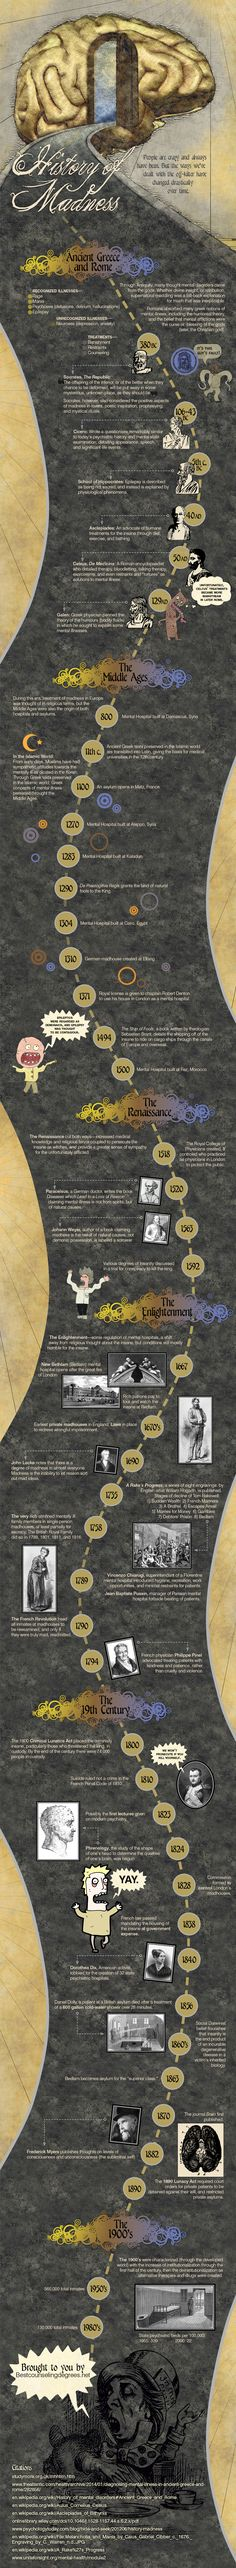 The history of madness: an infographic